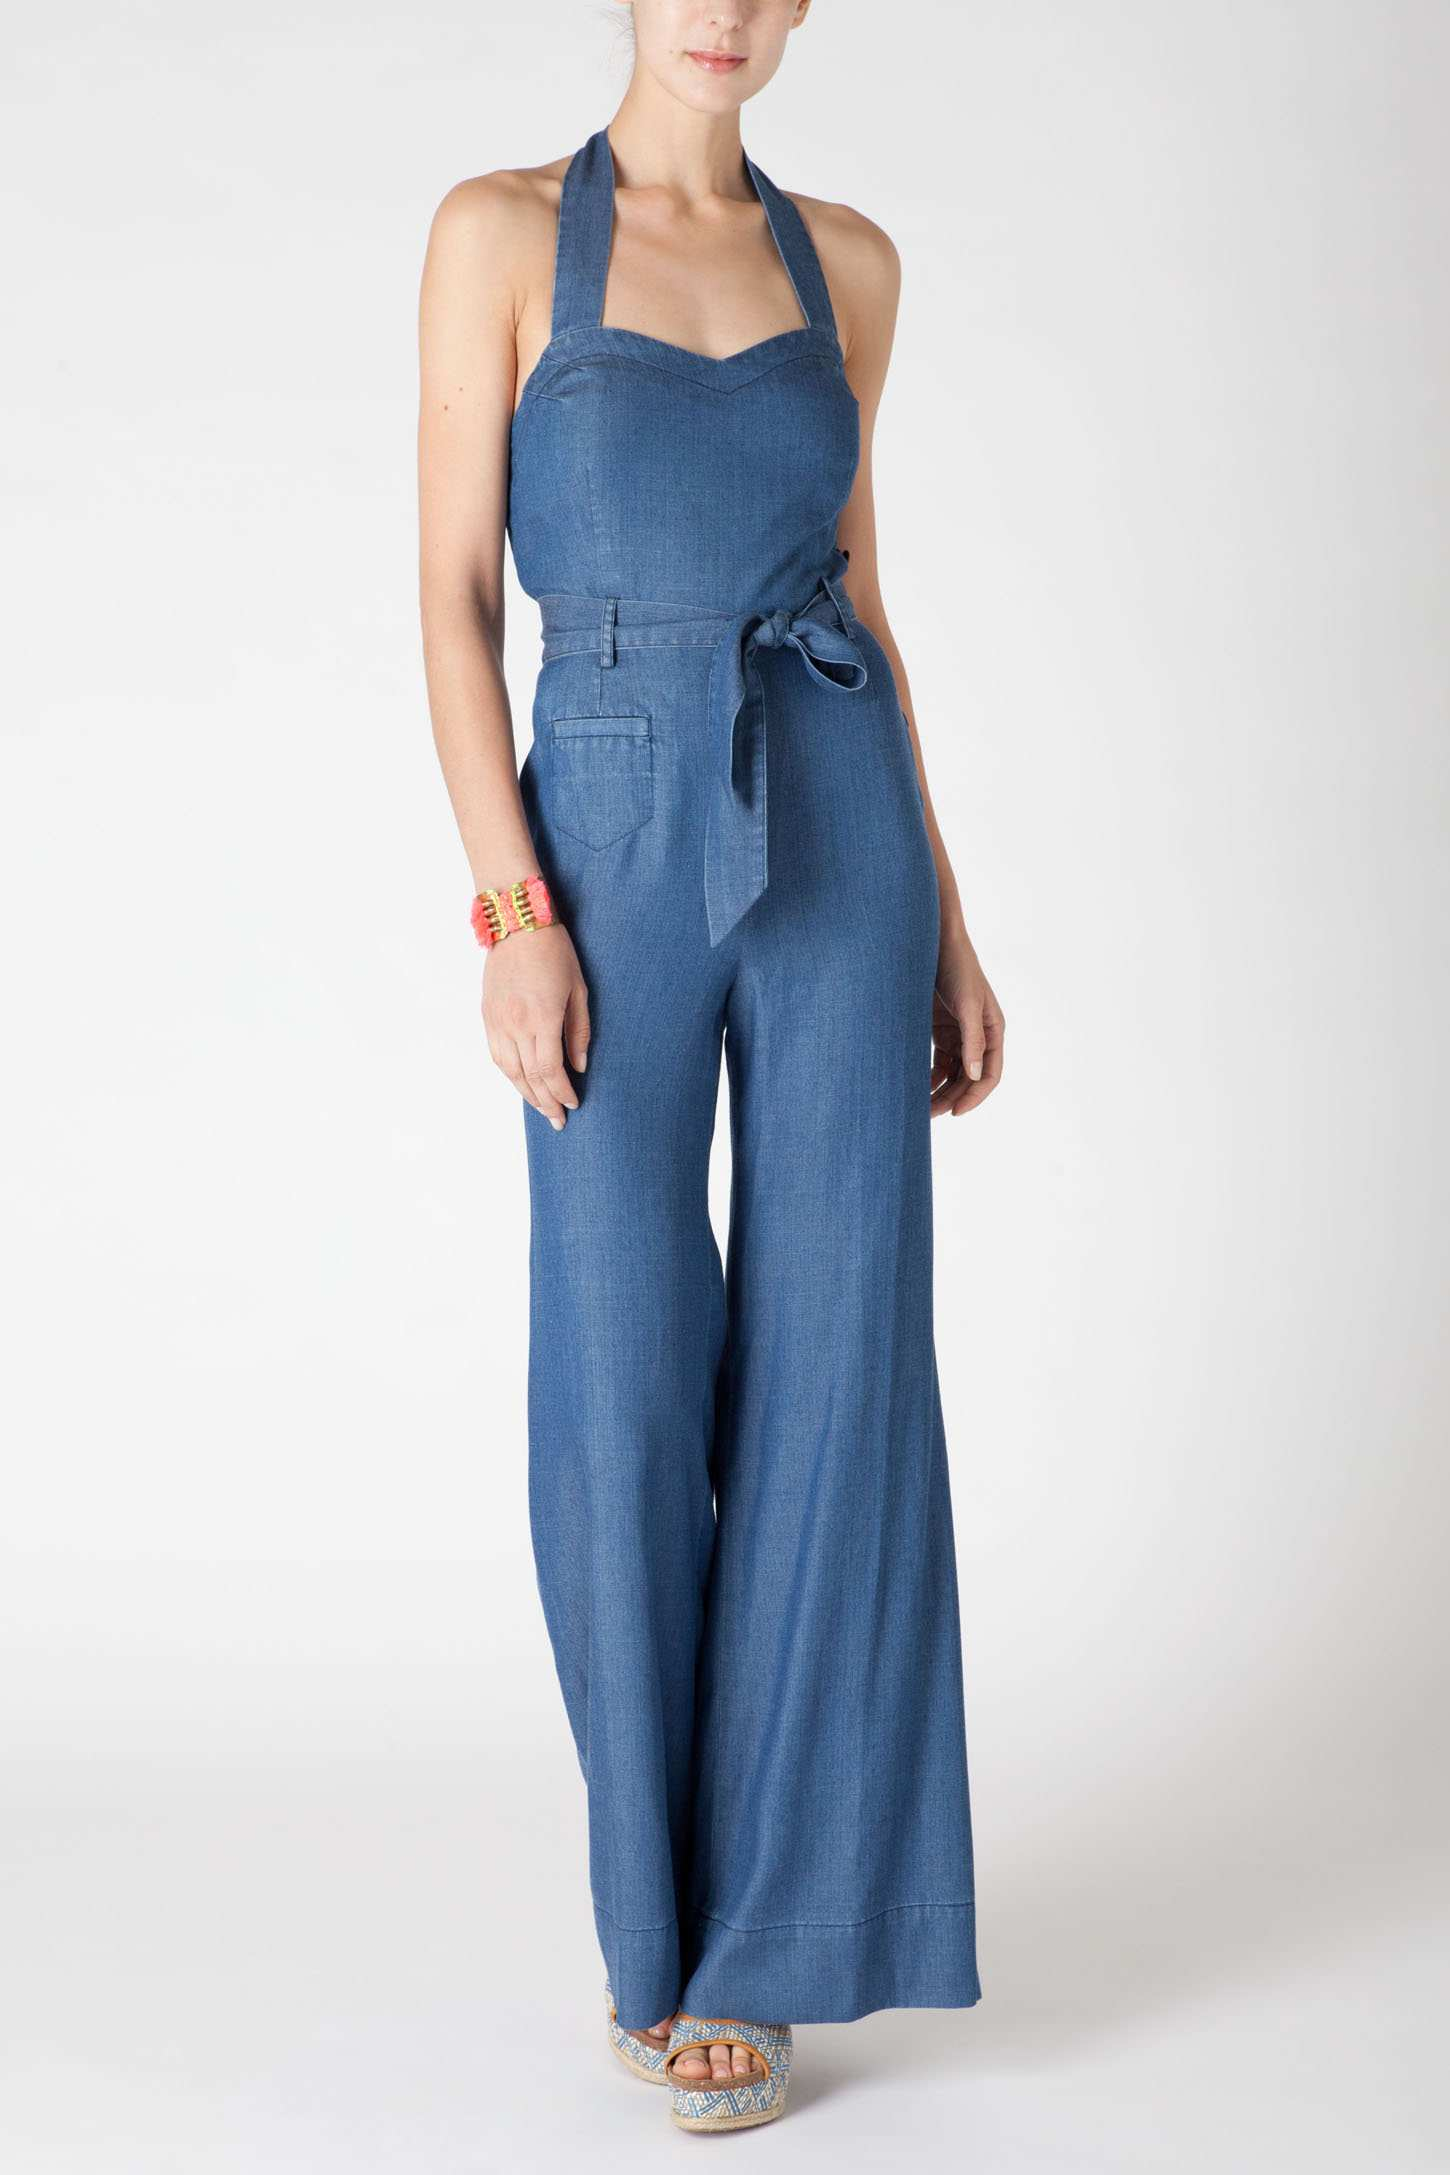 MAXIMGR Women's Loose Long Sleeve Denim Romper High Neck Long Pants Jumpsuit with Ti Shop Best Sellers· Deals of the Day· Fast Shipping· Read Ratings & Reviews/10 (1, reviews).